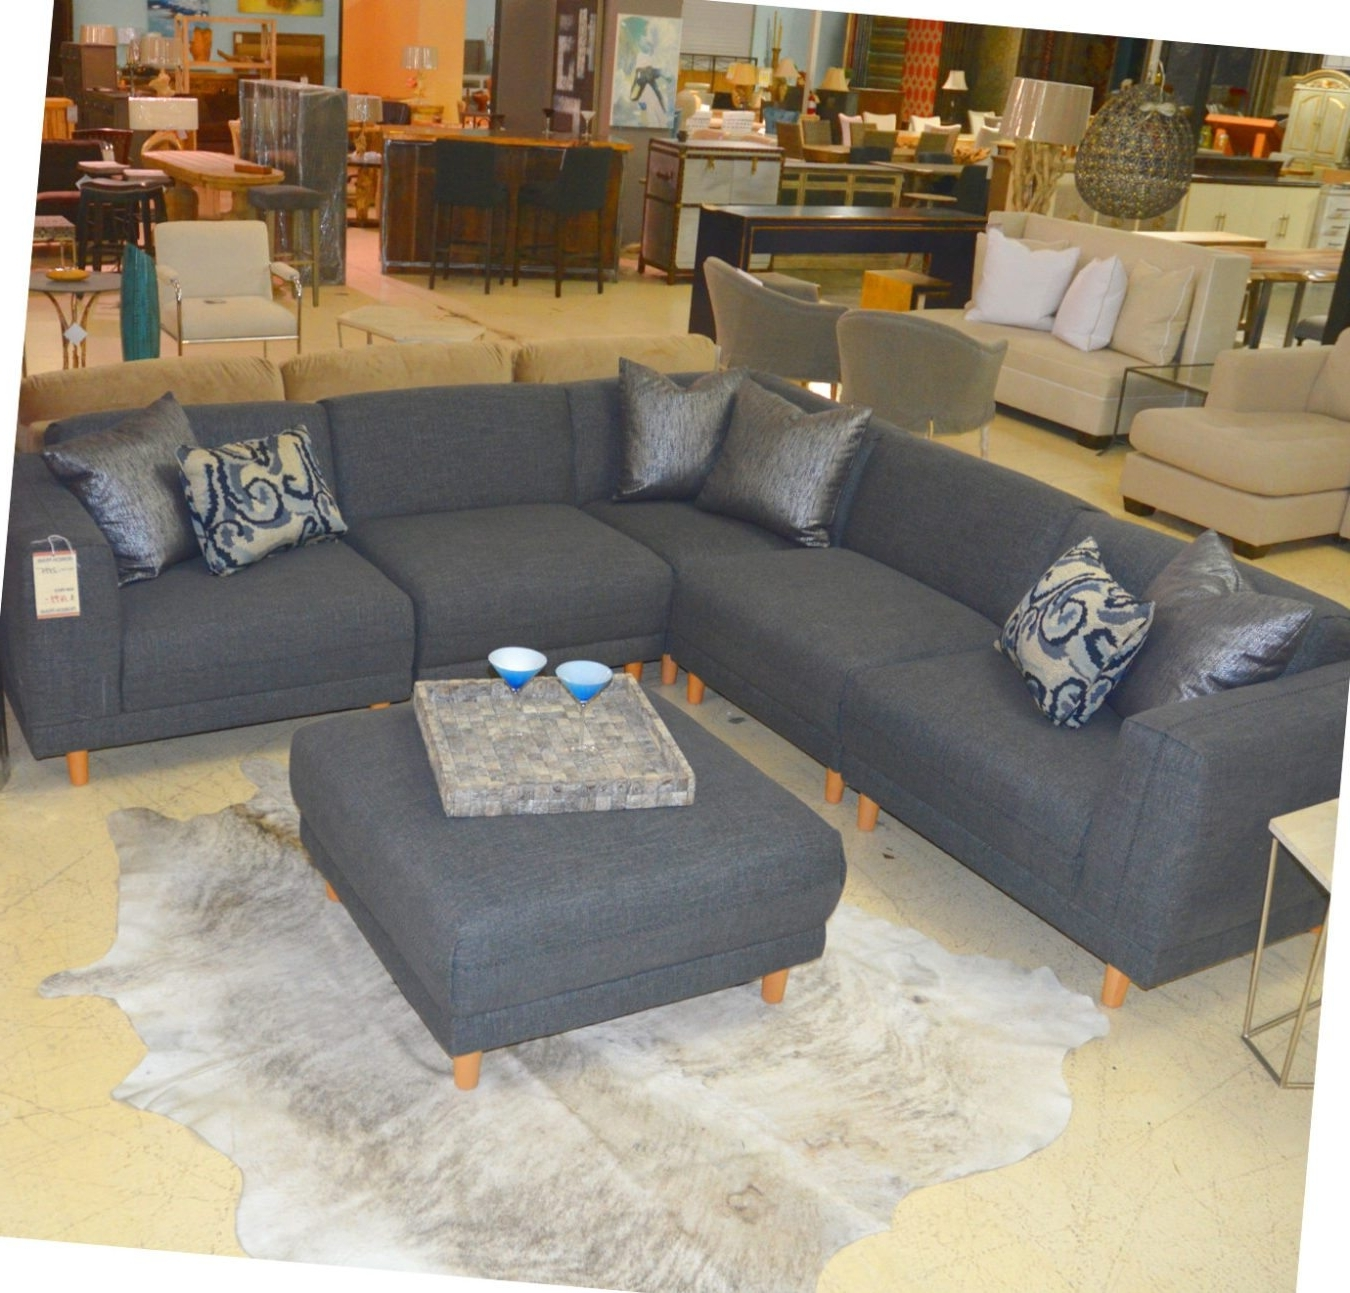 Widely Used Cheap Sectionals With Ottoman Intended For Five Piece Grey Sectional And Ottoman – Horizon Home Furniture (View 15 of 15)